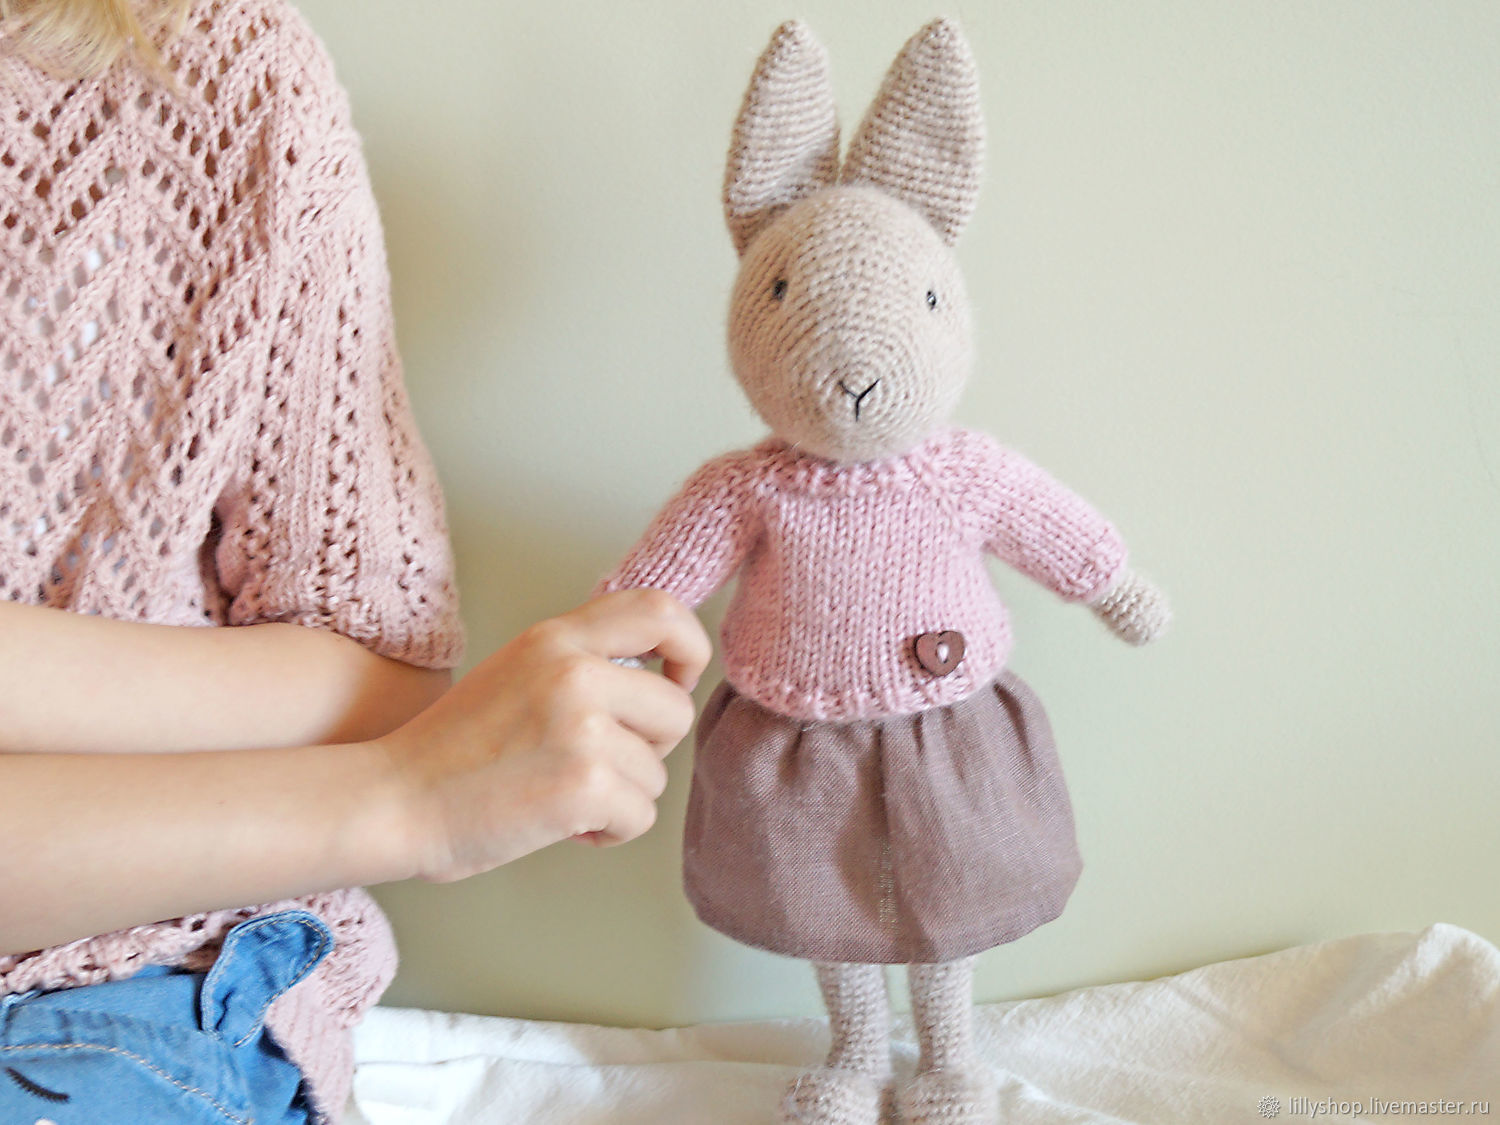 Hare toy handmade knitted - Patty, Stuffed Toys, St. Petersburg,  Фото №1